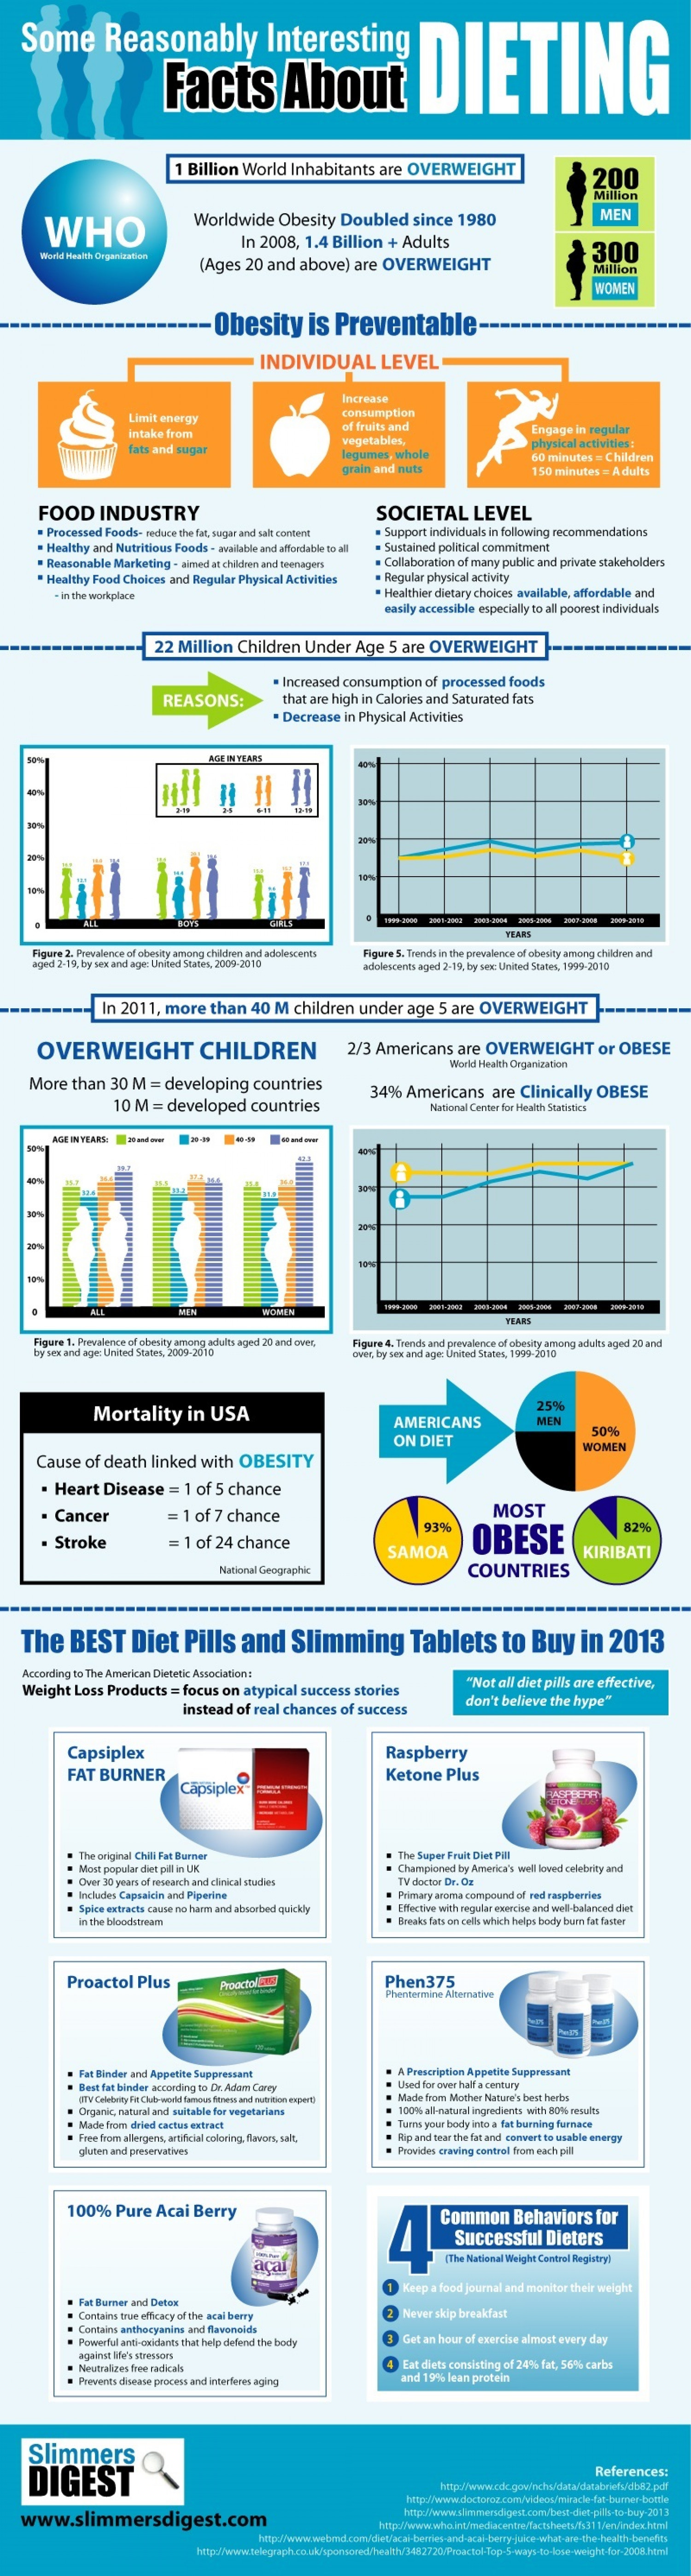 Some Reasonably Interesting Facts About Dieting Infographic